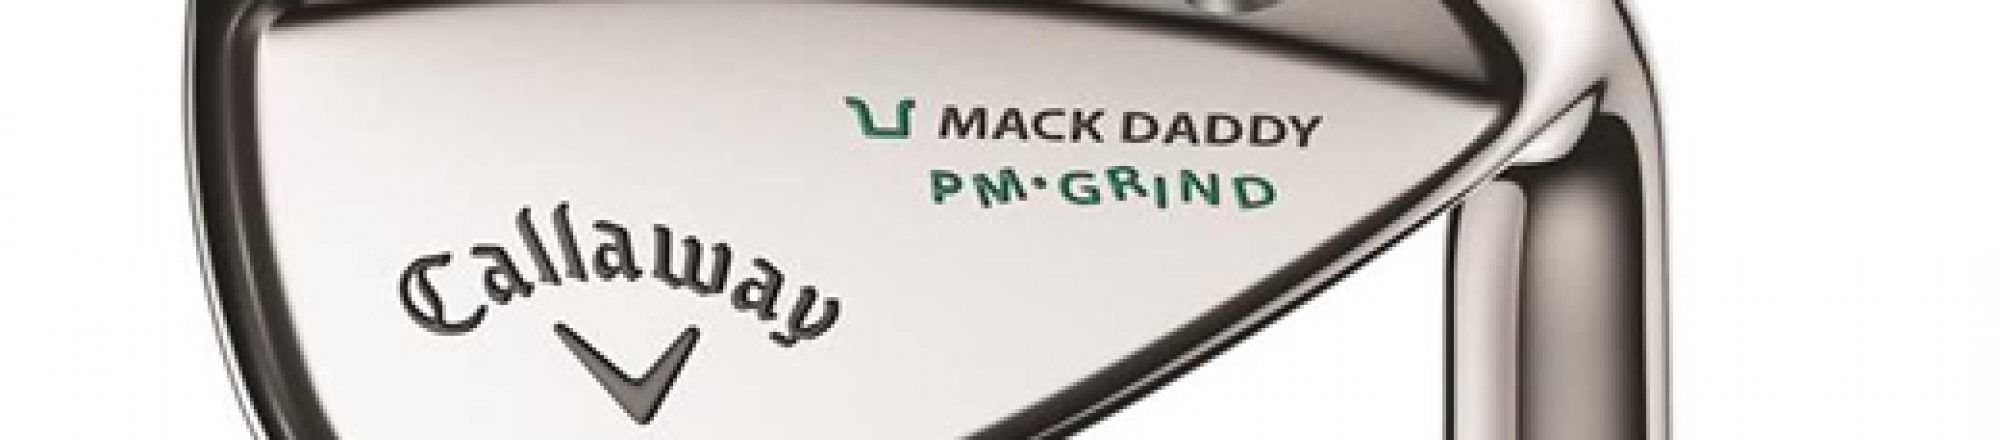 Callaway launch Mack Daddy wedges in collaboration with Phil Mickelson